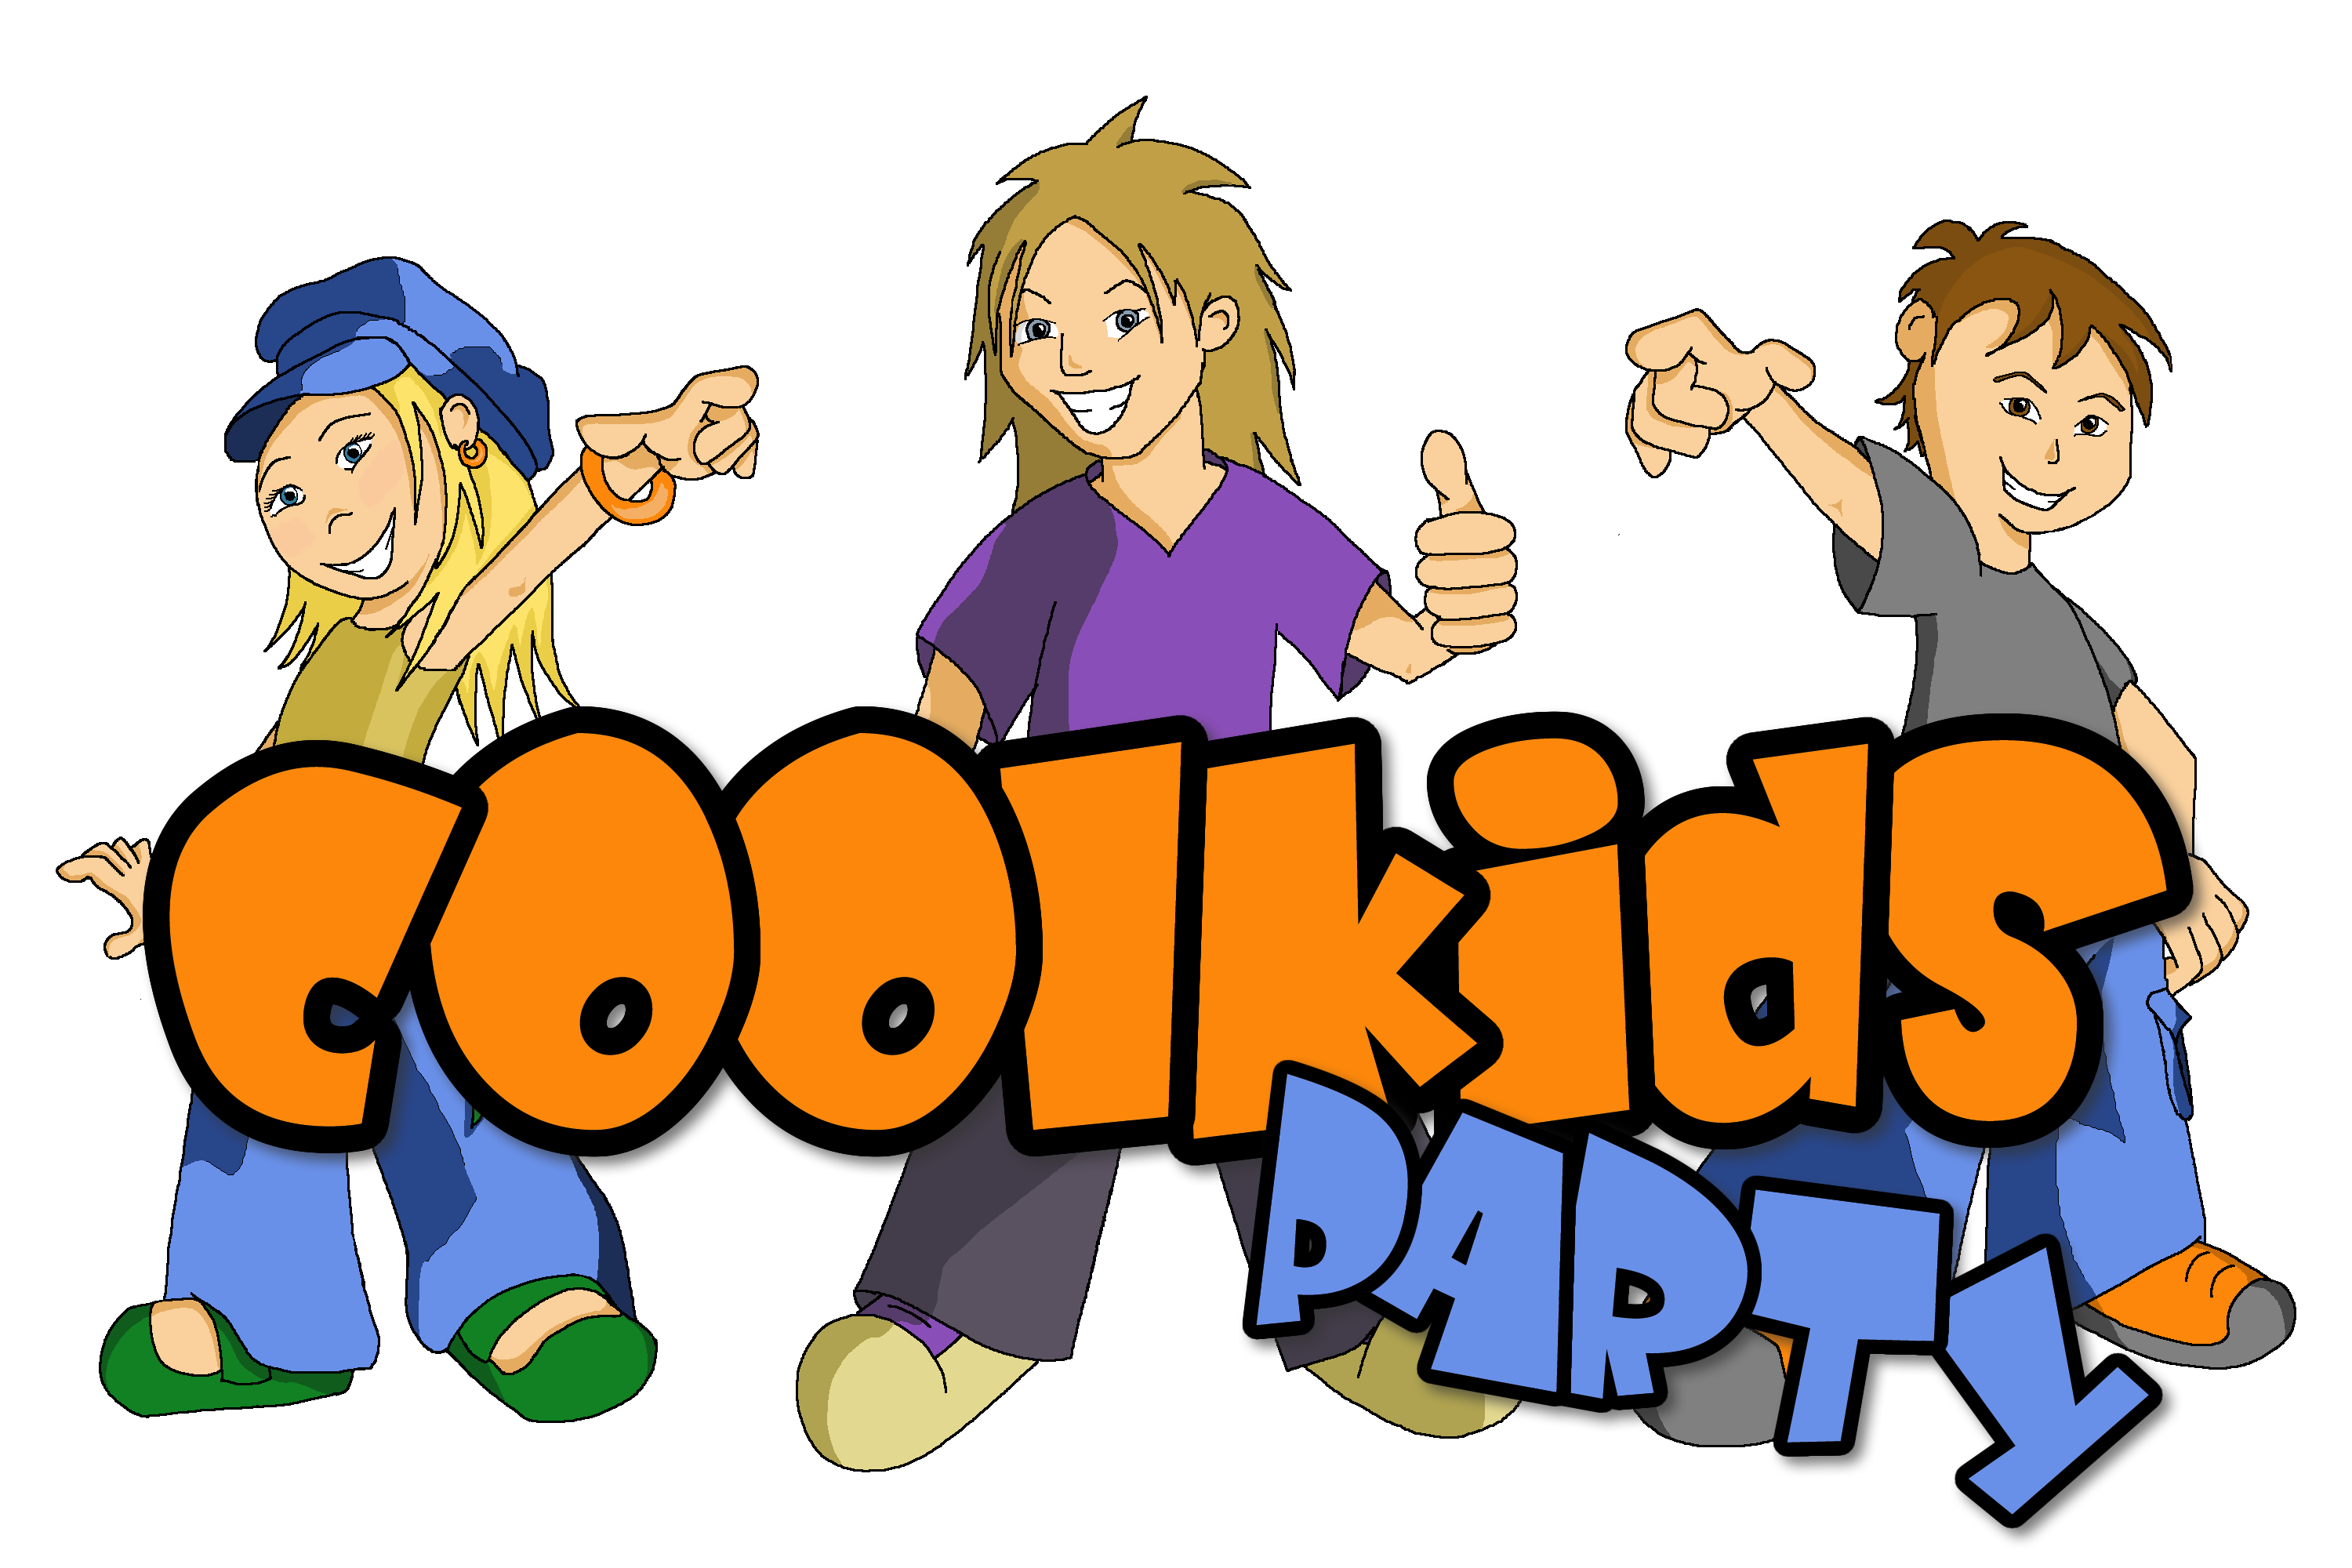 Coolkids-Party-Logo-NEW